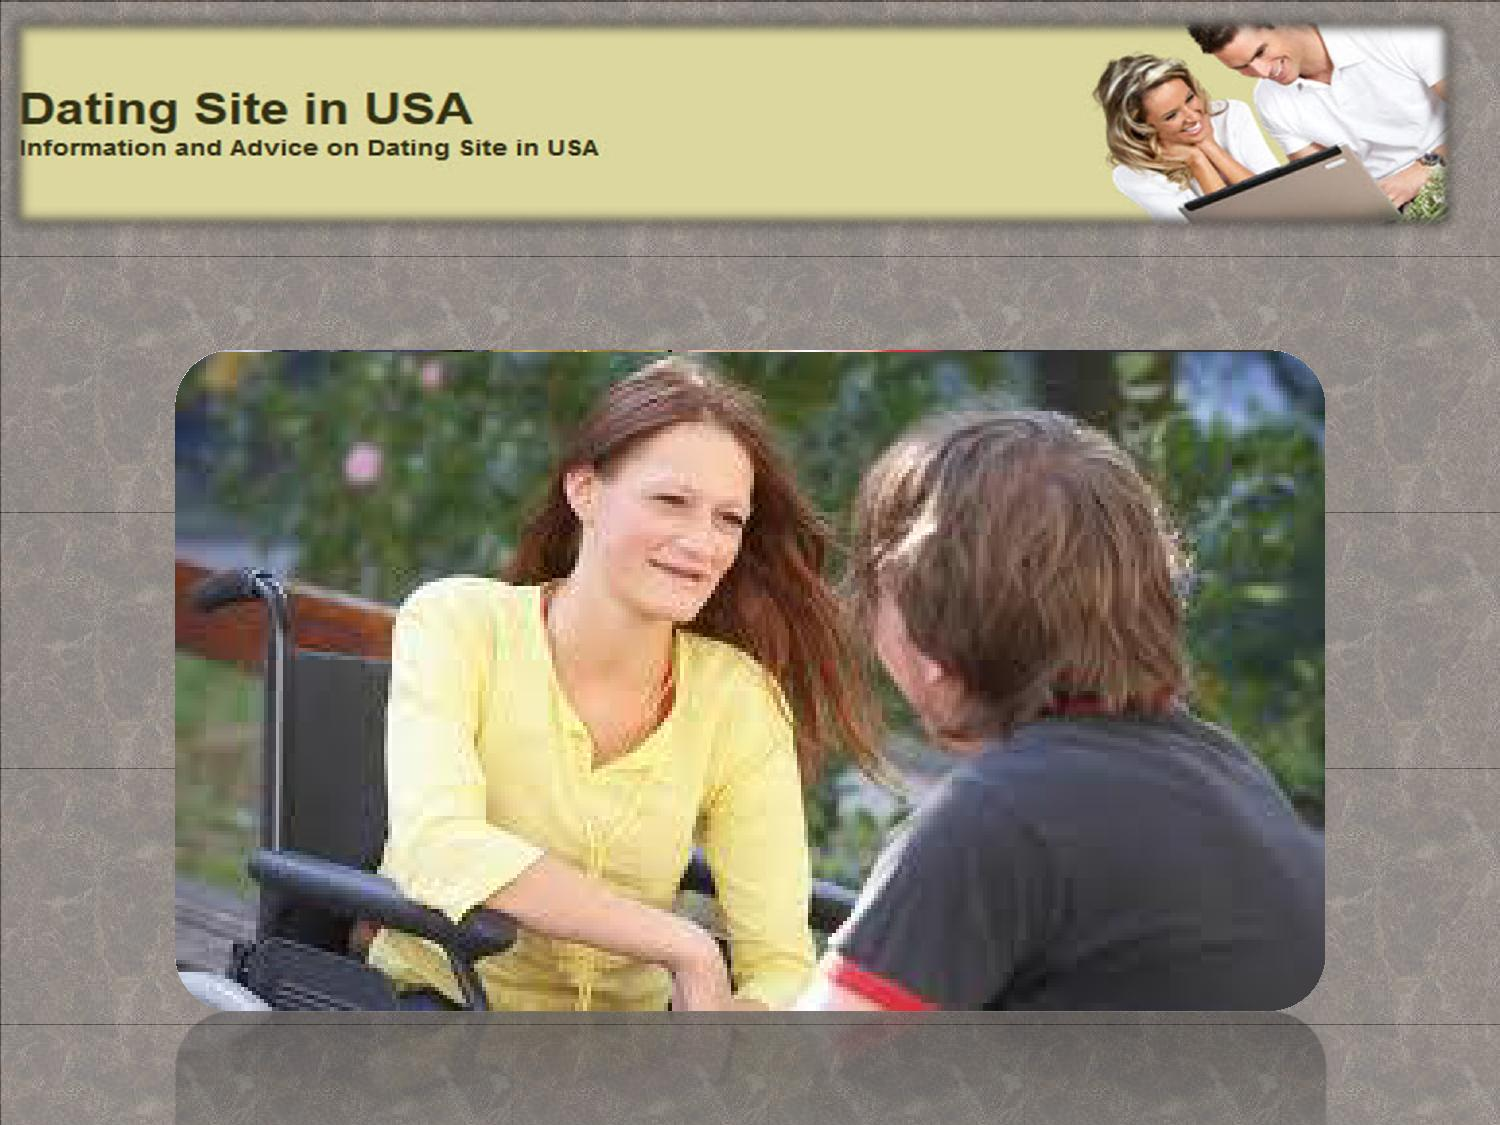 dating site in the usa Blinddatecom™ is a free online dating site in the usa for american online dating we have thousands of members from every state in the united states we have thousands of members from every state in the united states.